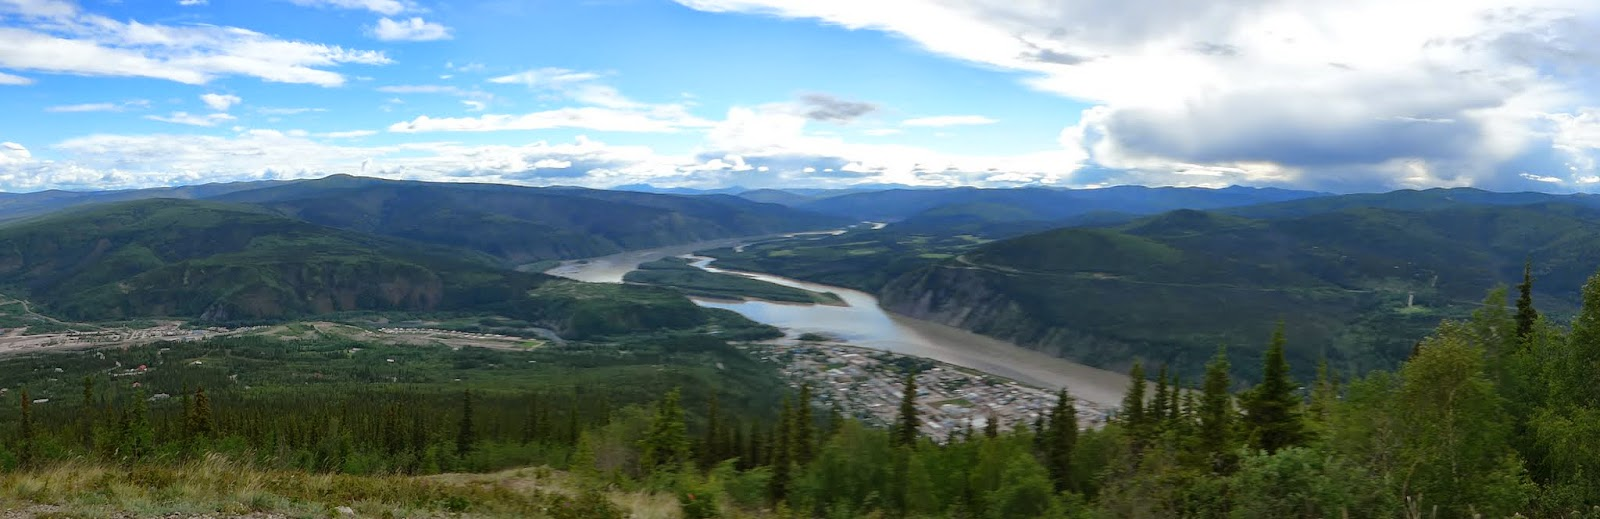 View of Dawson City and the Yukon River.